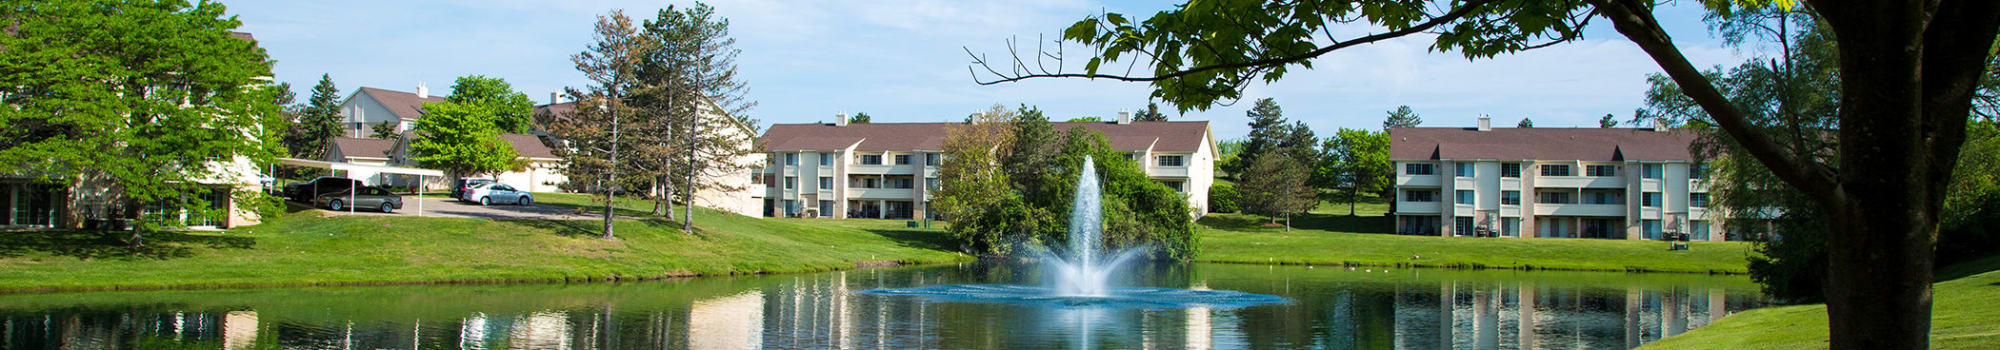 Resident information at Aldingbrooke in West Bloomfield, Michigan